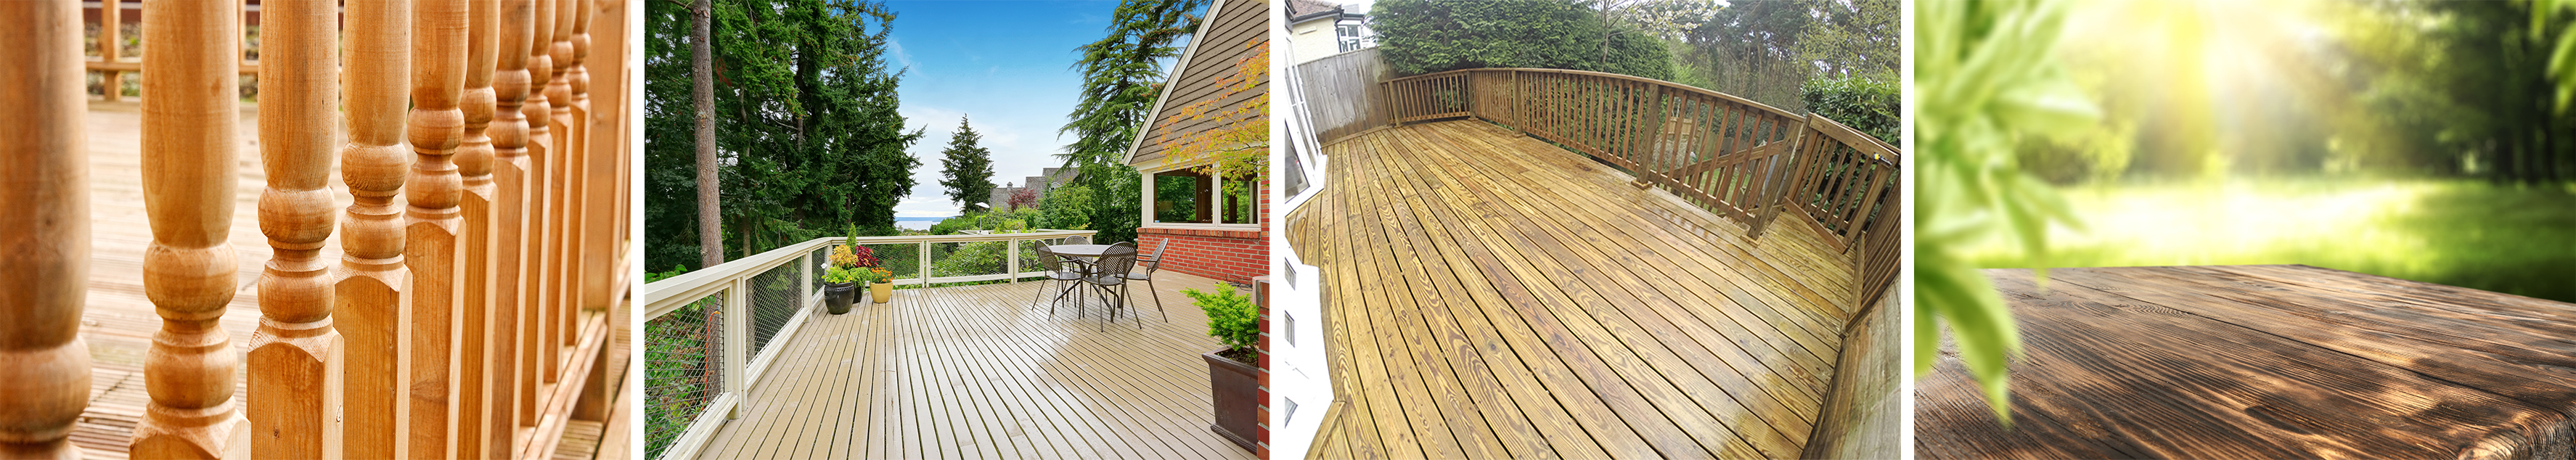 Decking Cleaning Services in Verwood, Dorset